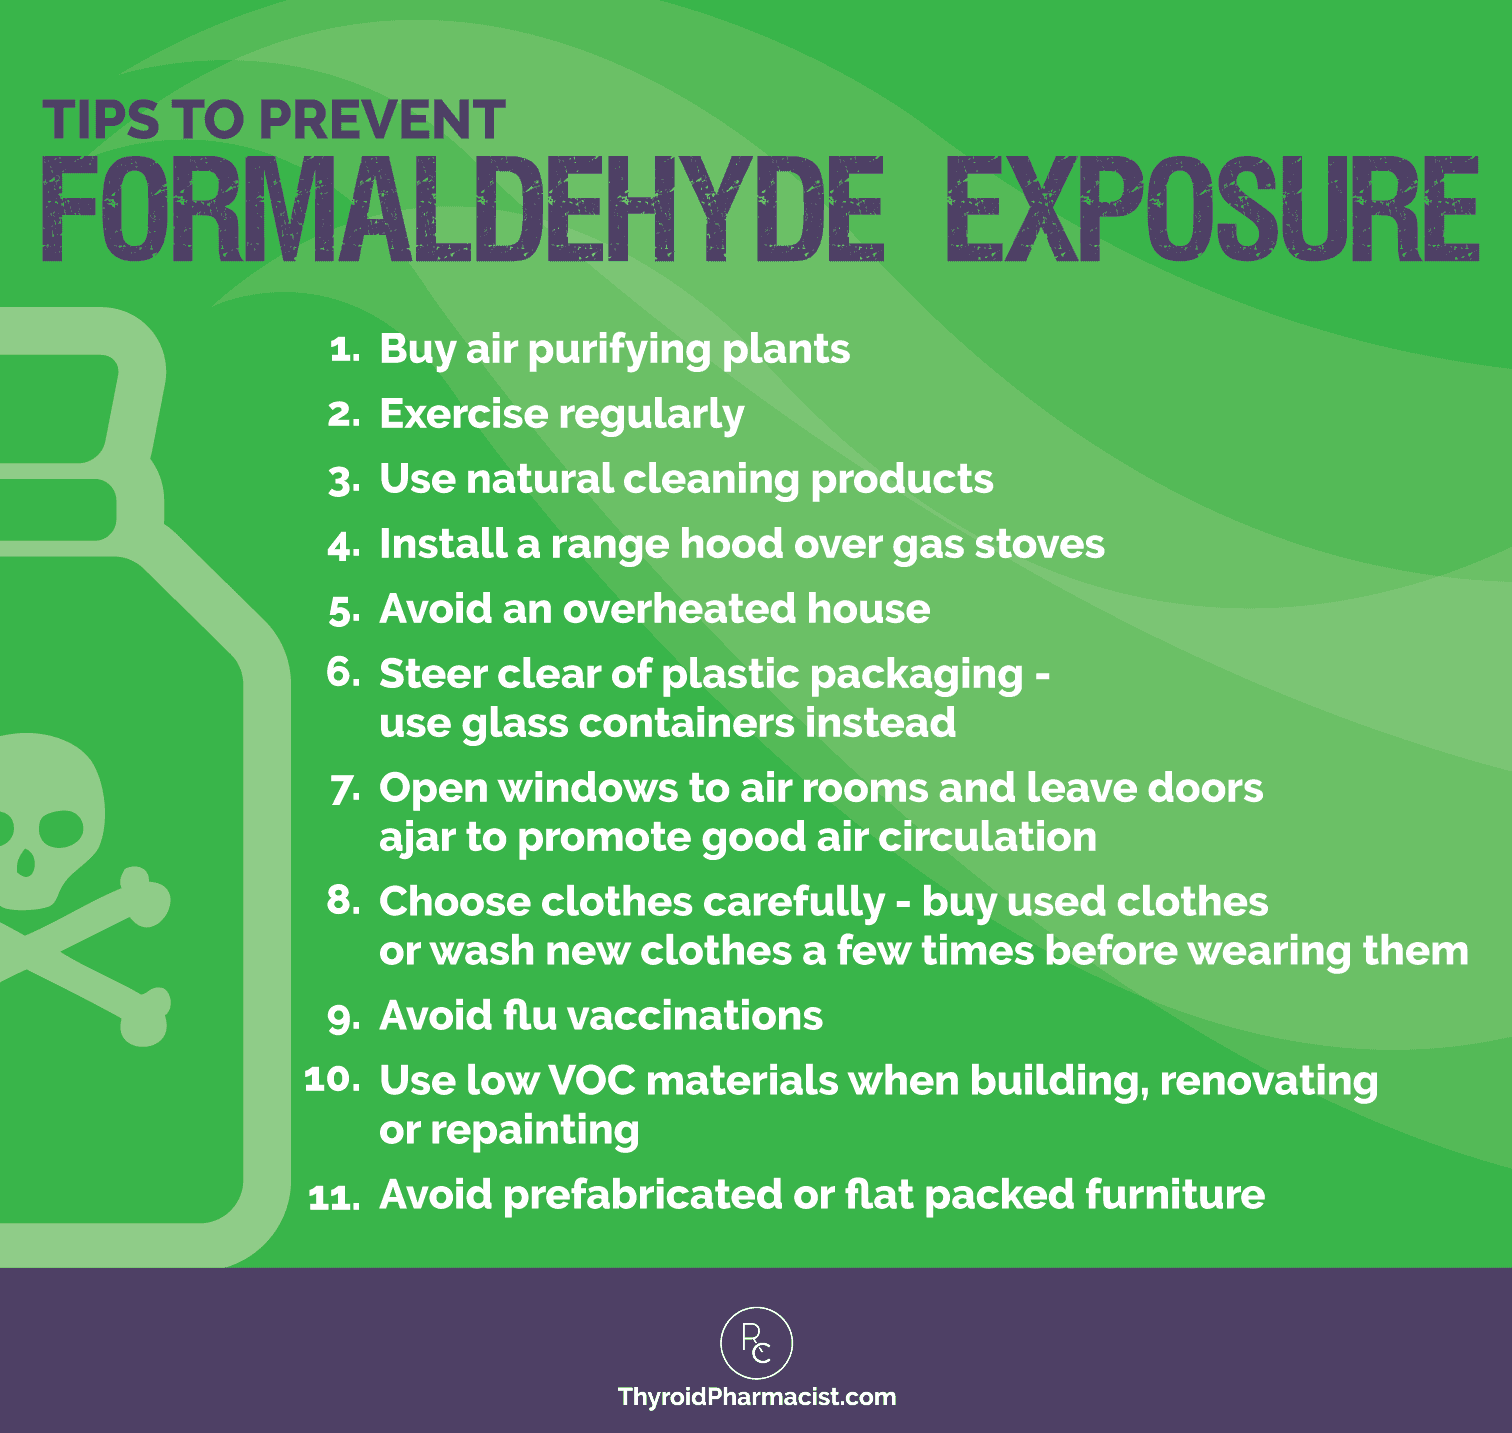 Prevent Formaldehyde Exposure